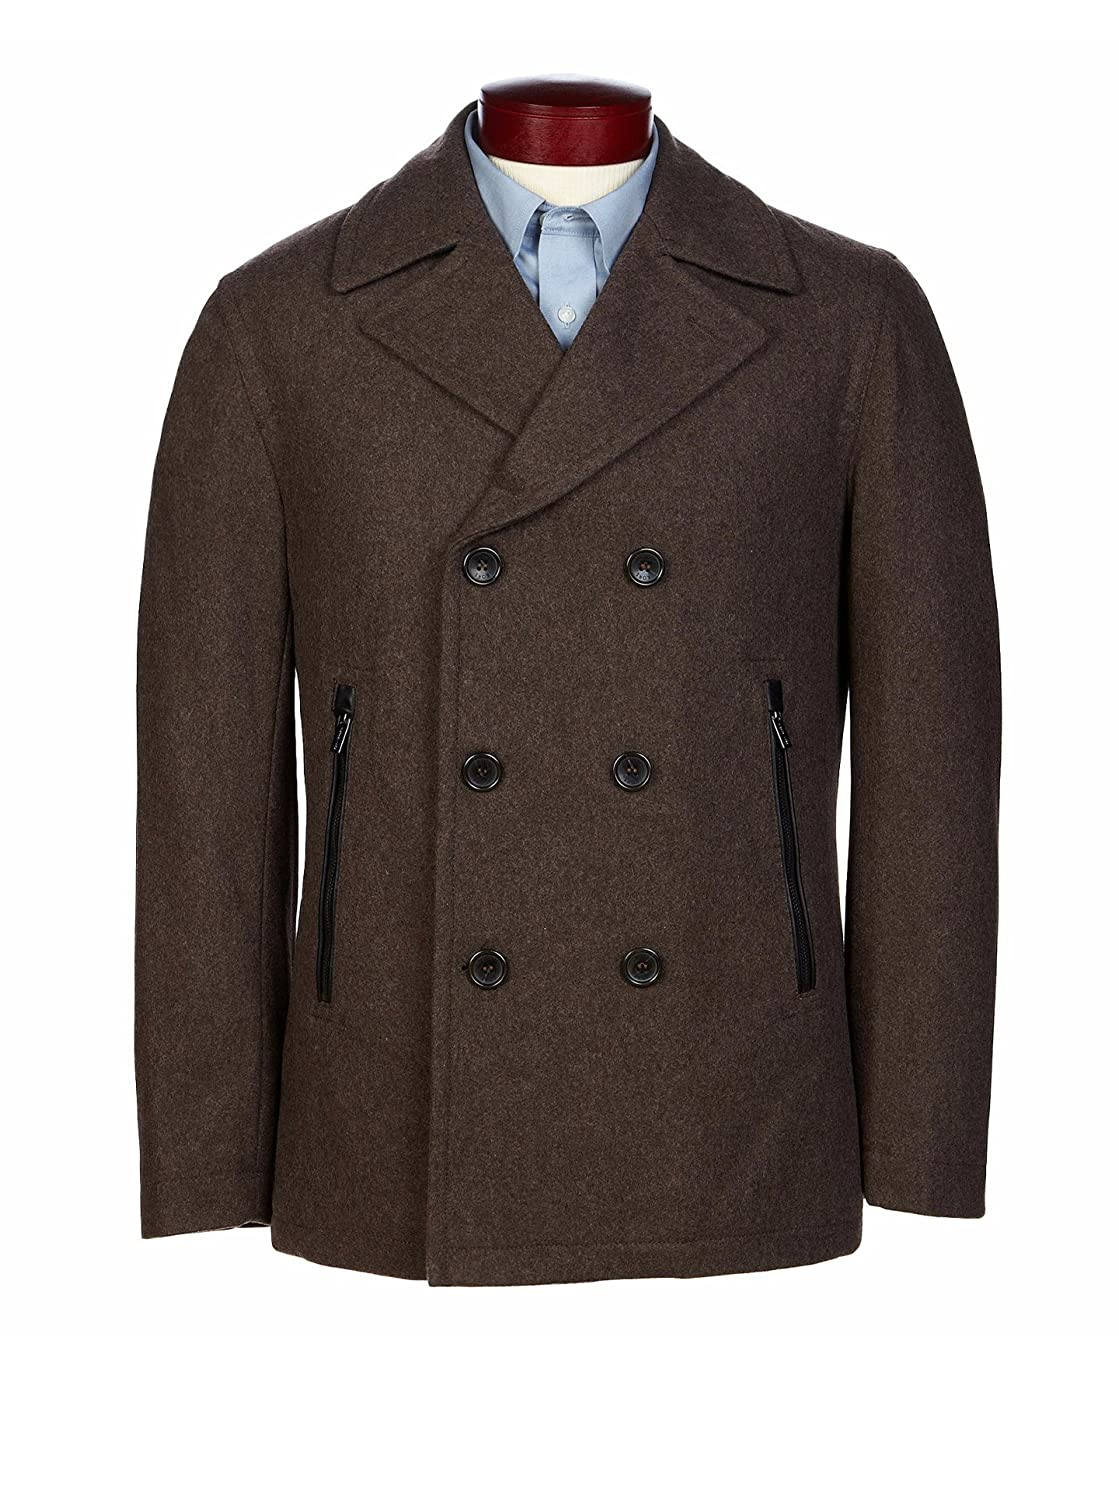 Michael Kors Wool Pea Coat Men's mk16454nbd at Amazon Men's ...